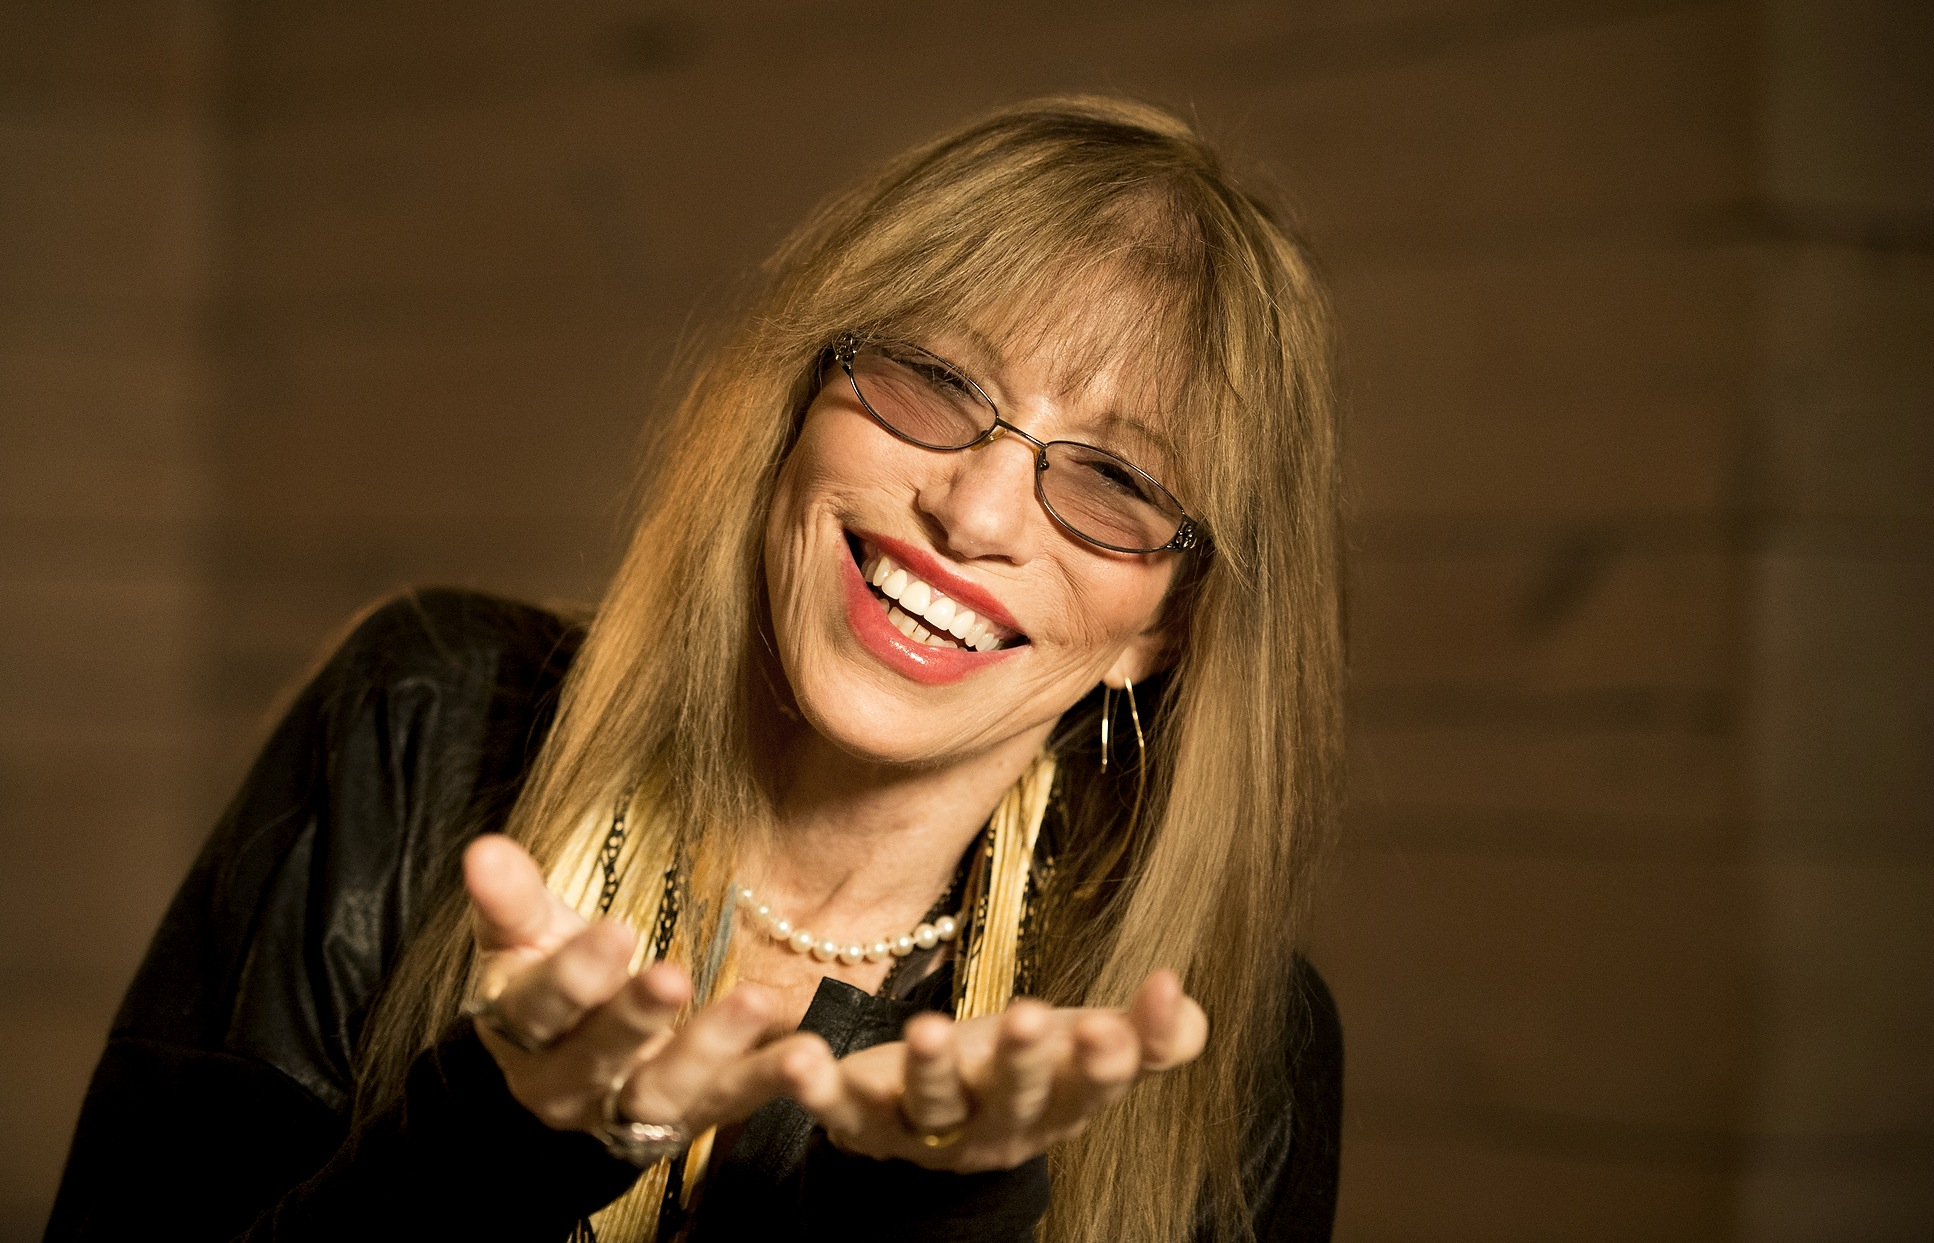 Carly Simon tells USA Today about playing a concert with Taylor Swift